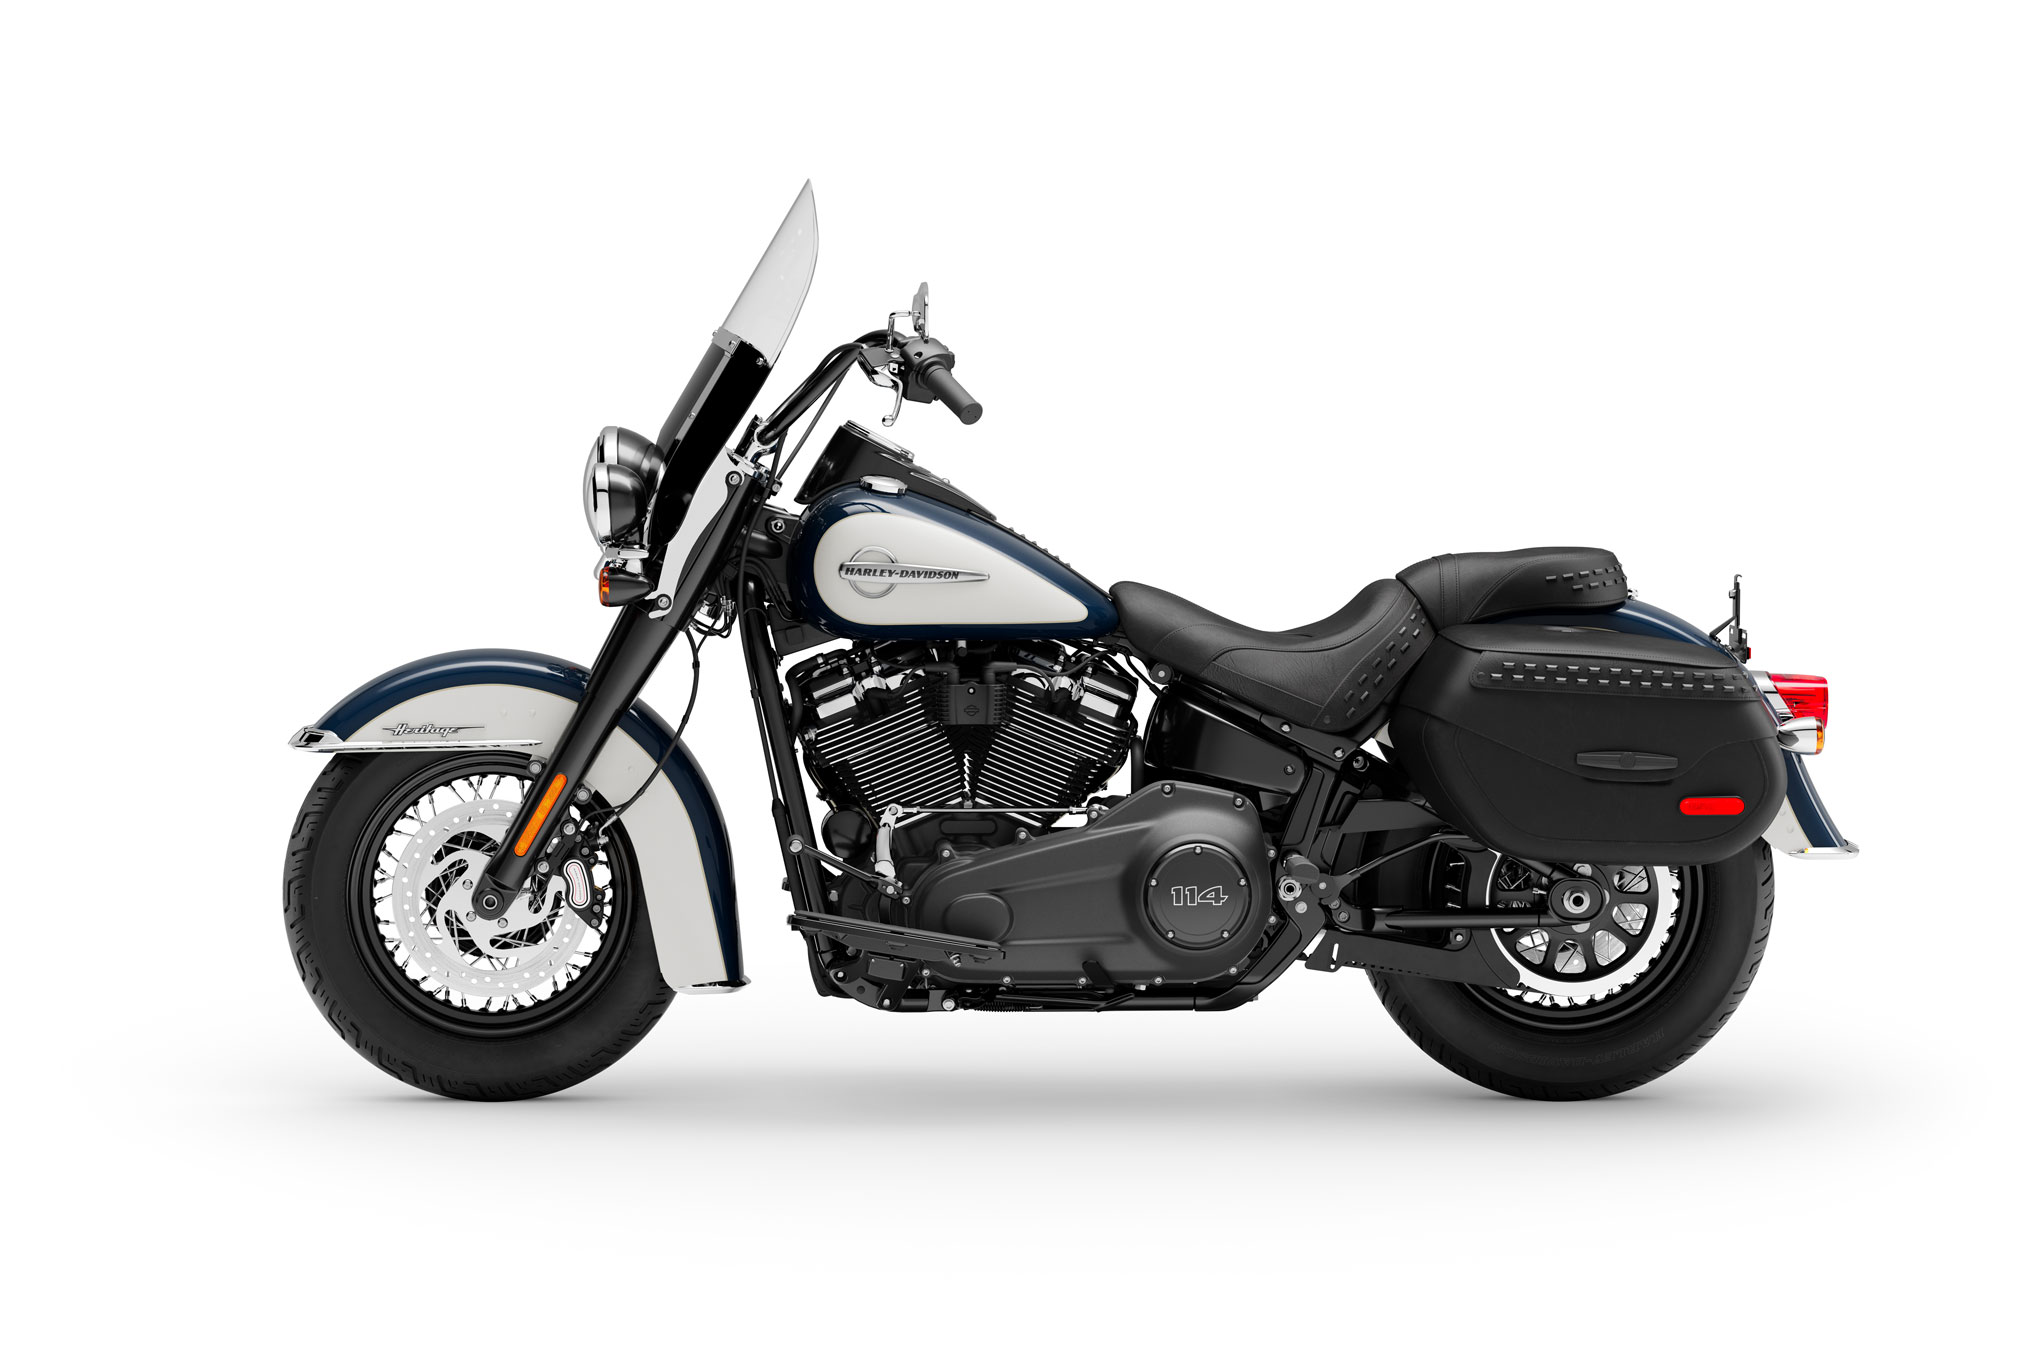 2020 Harley-Davidson Heritage Classic 114 Guide • Total ...